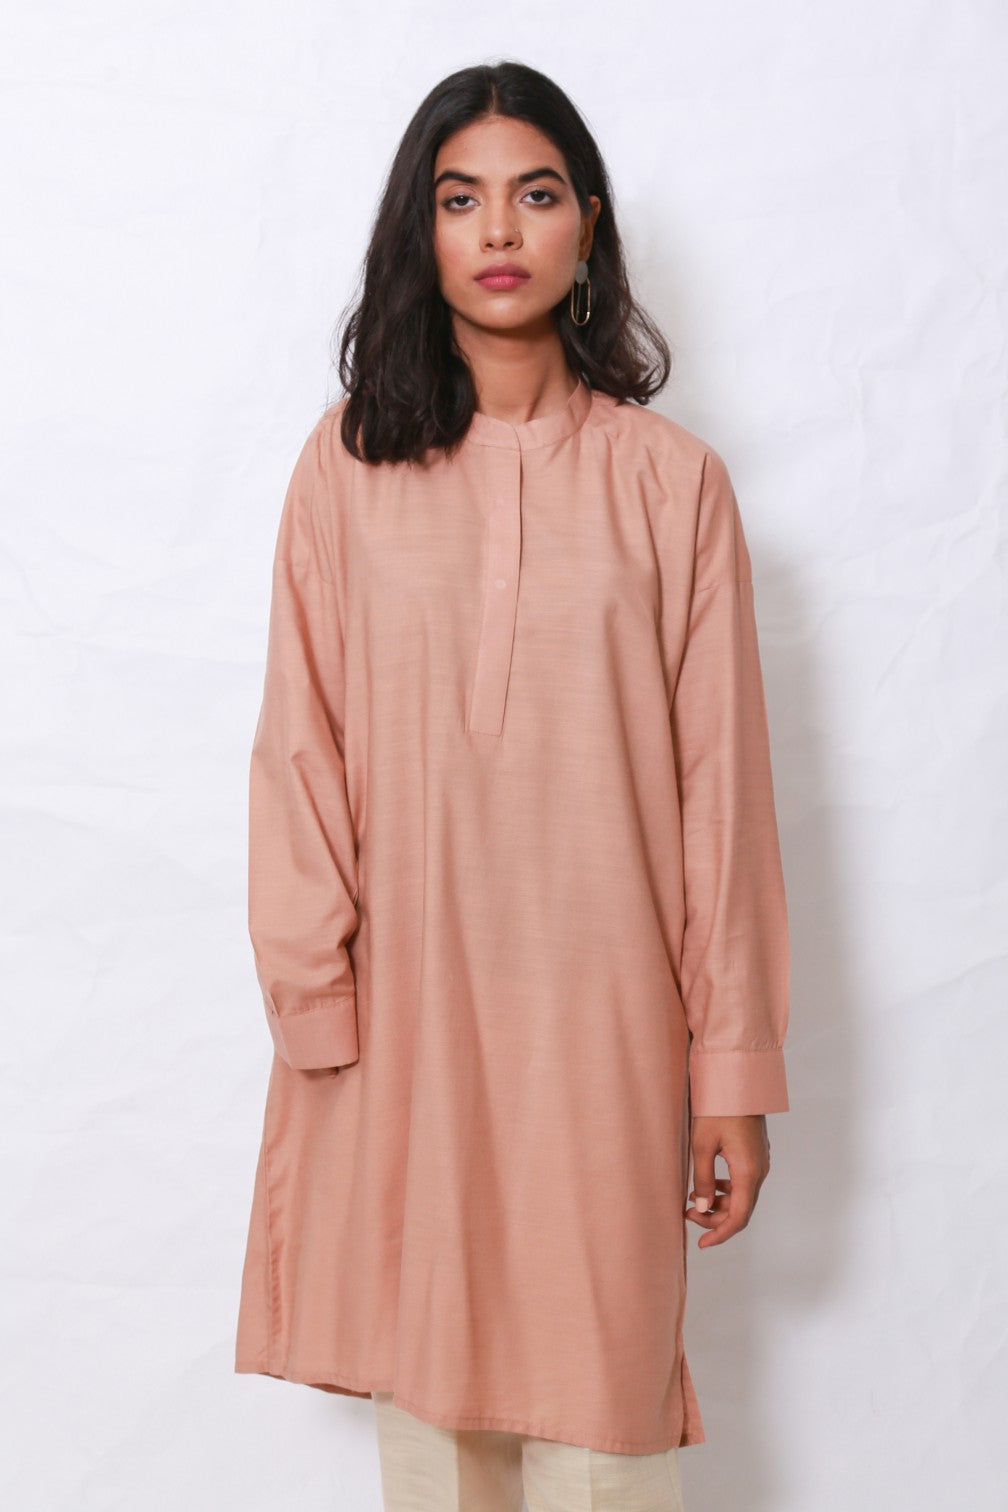 Generation - Teapink Solid Tunic